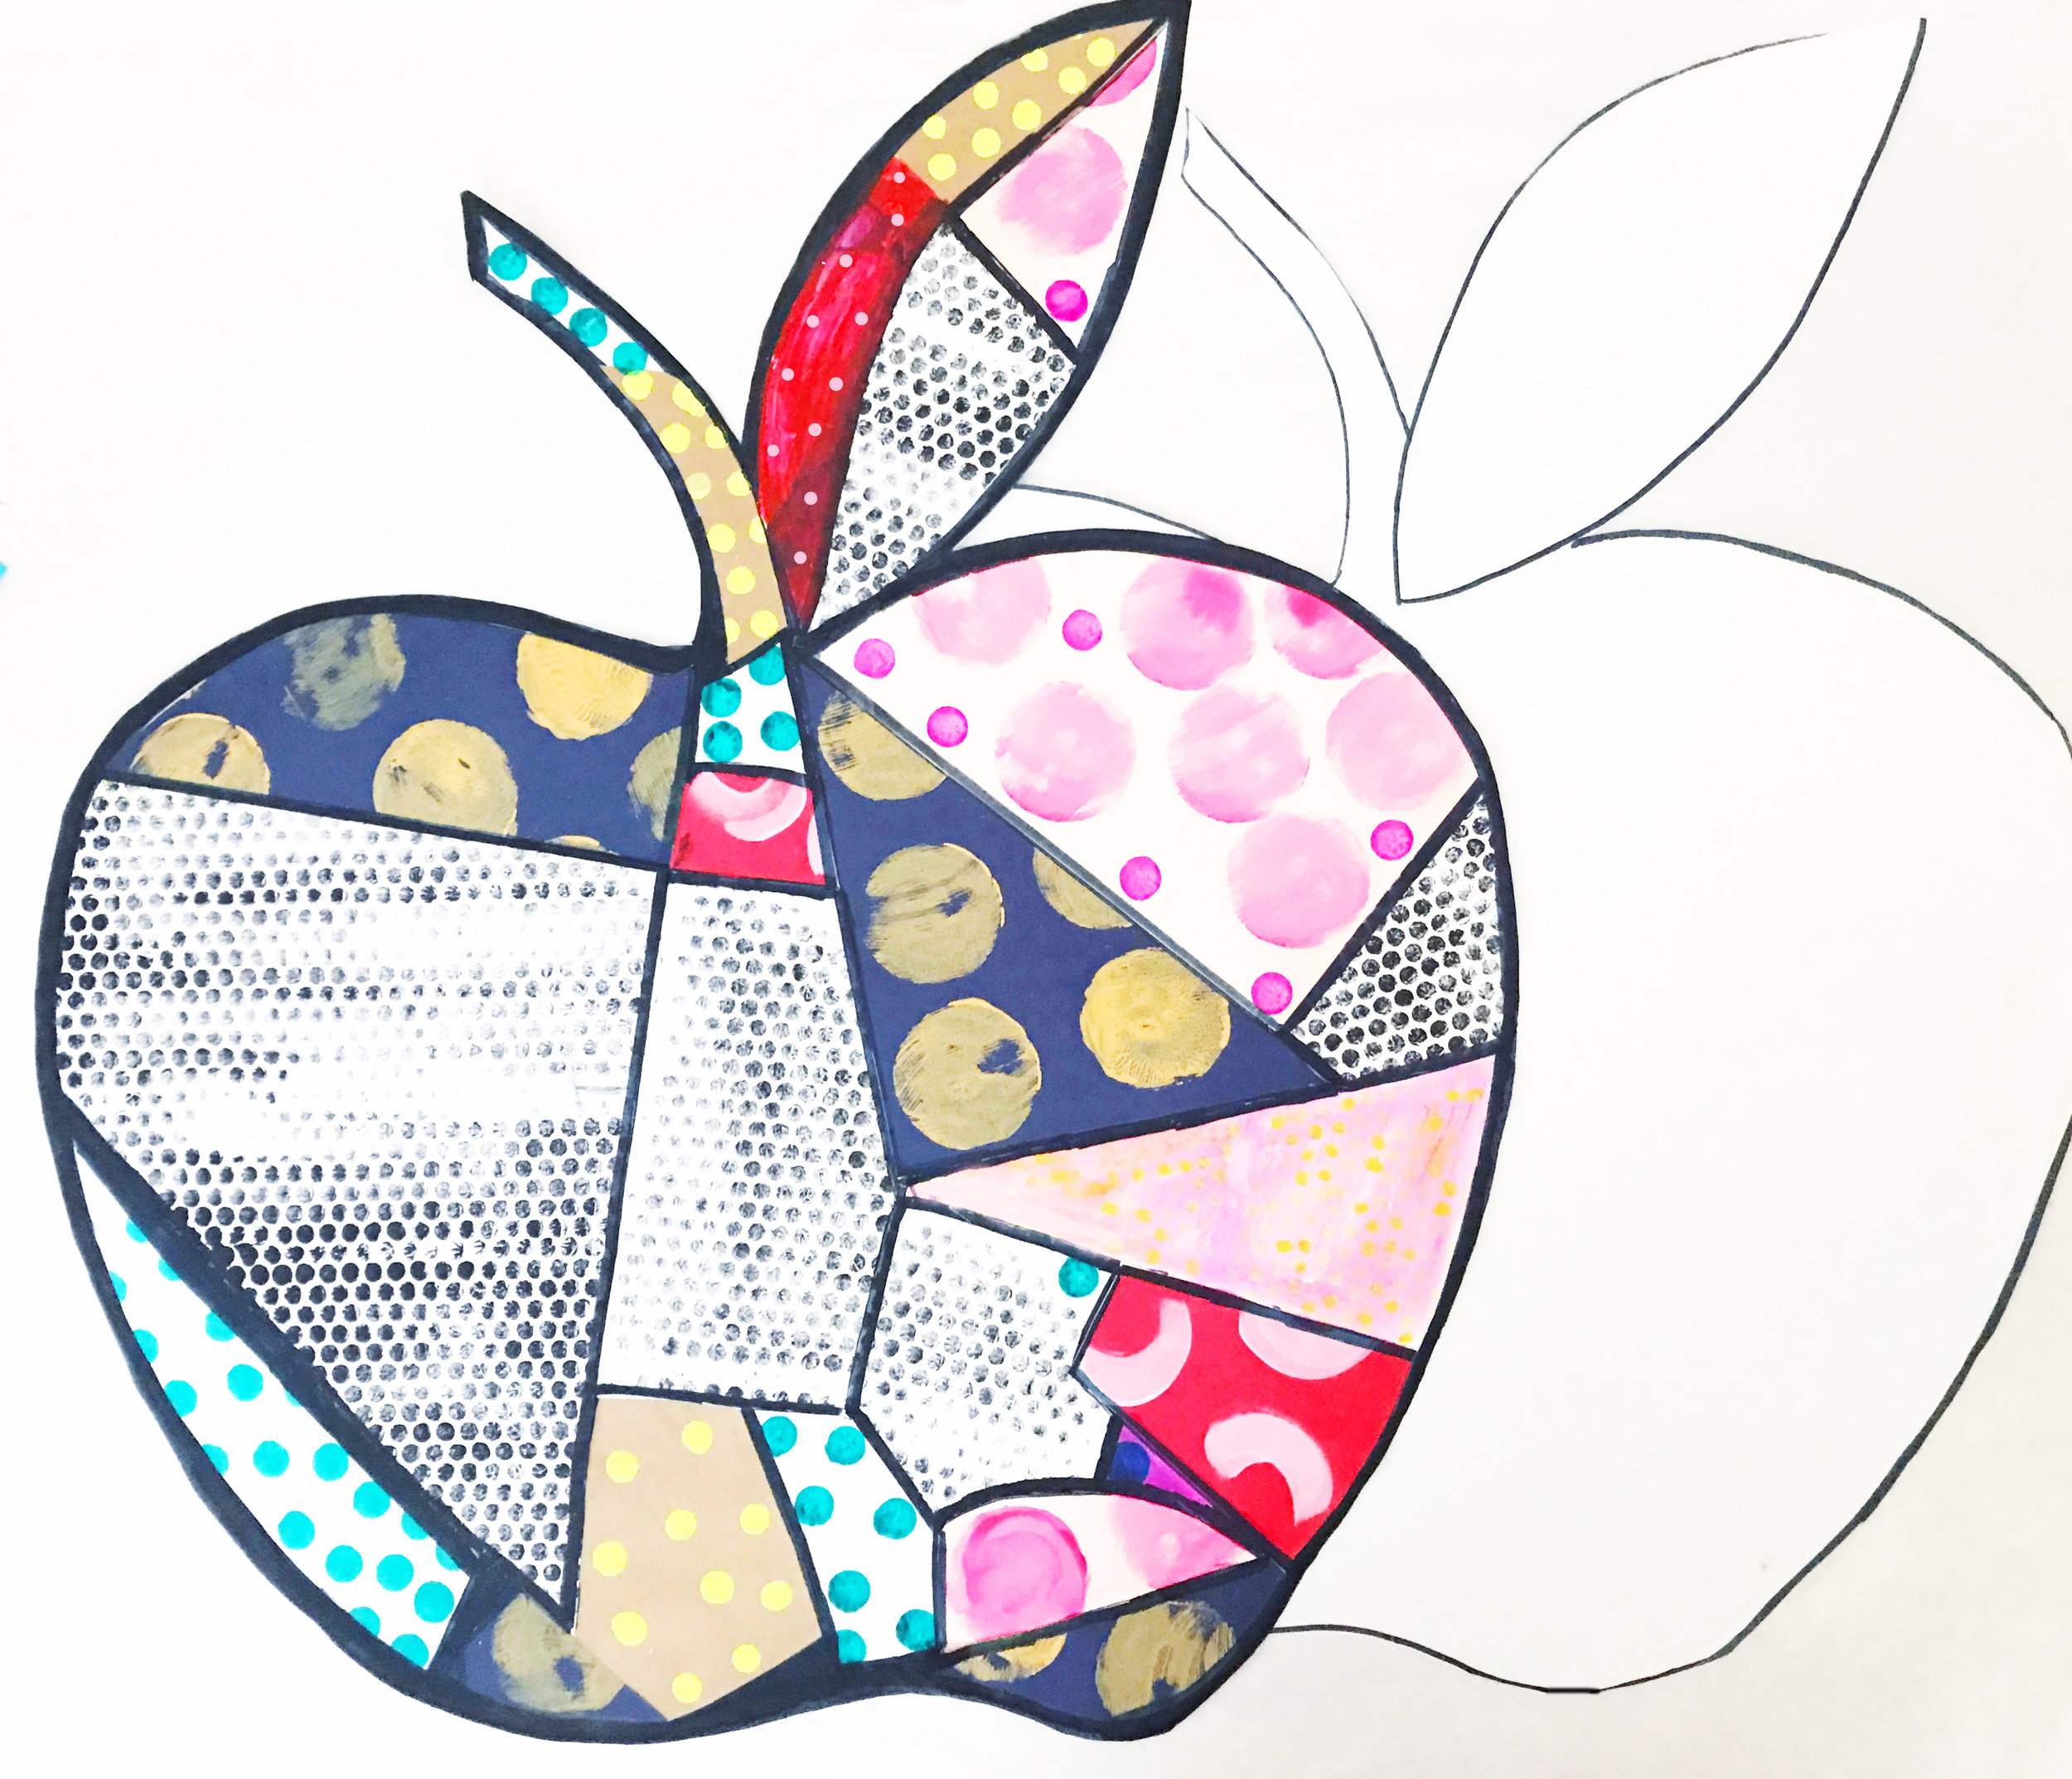 Big Pop Art Apple 10